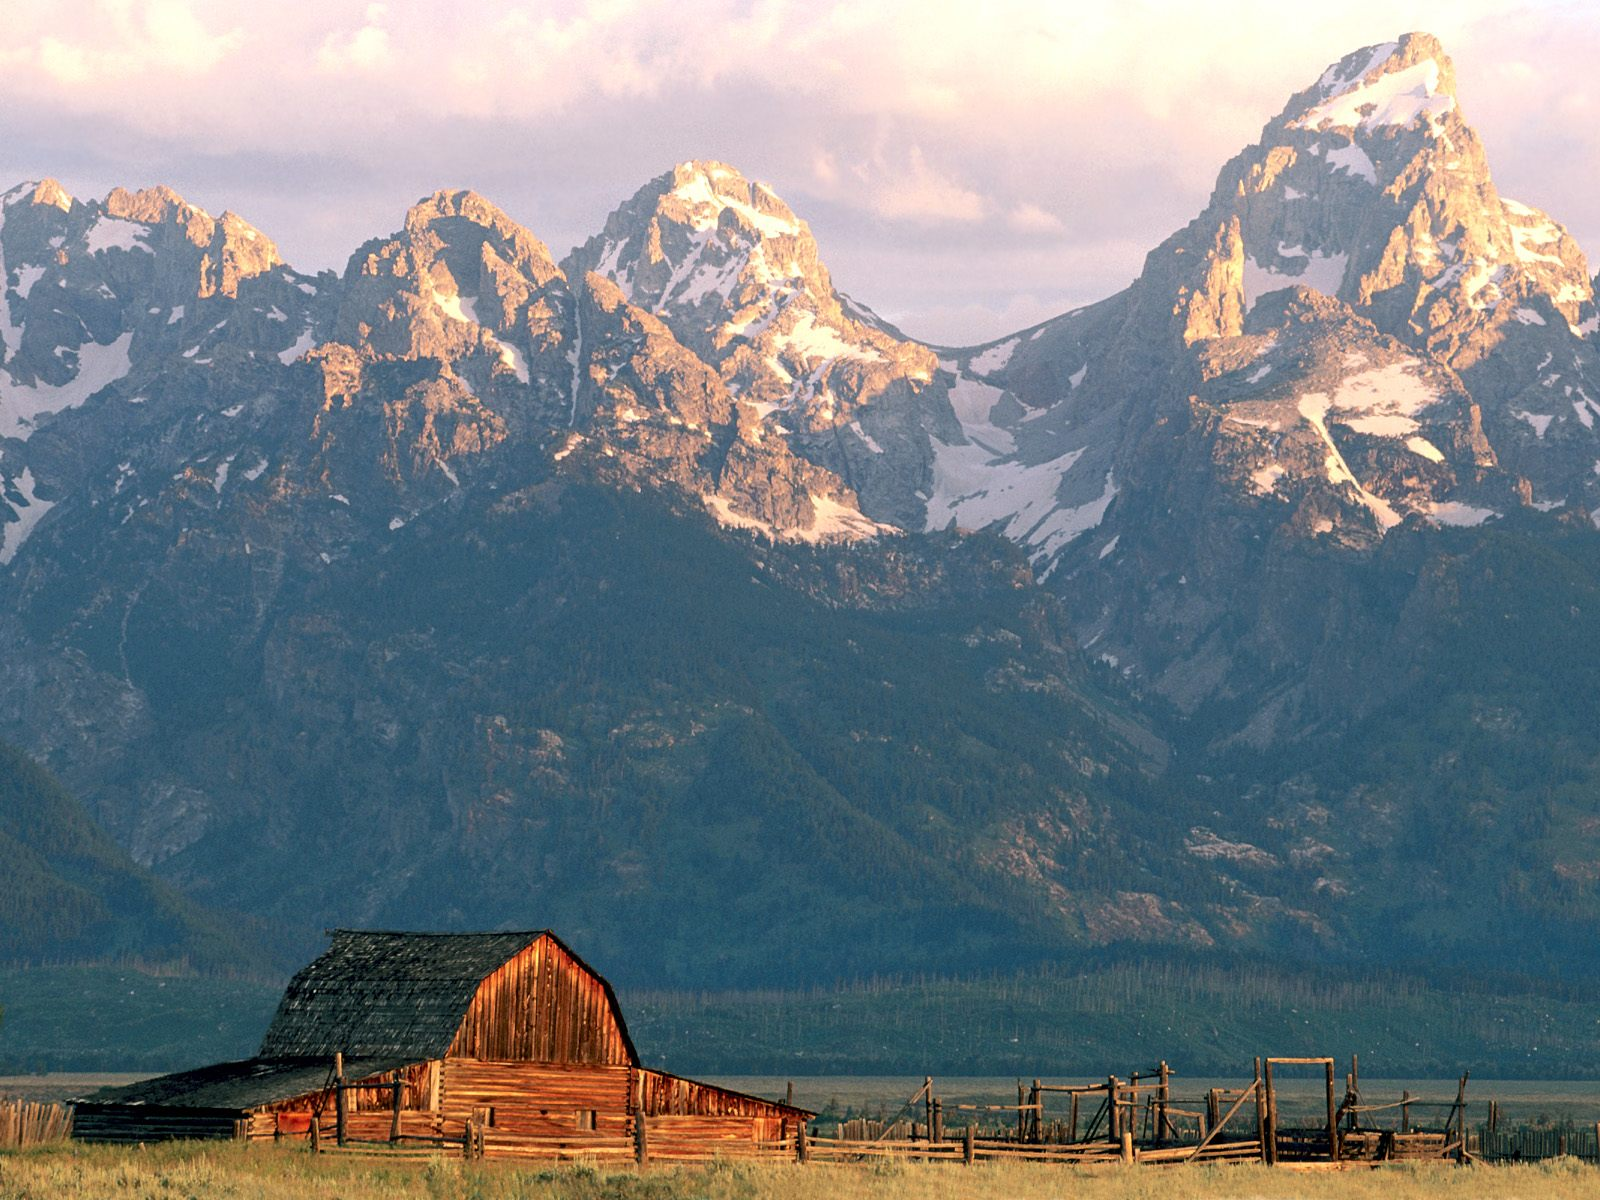 Jackson Hole Wyomin Wallpapers Pictures Photos and Backgrounds 1600x1200